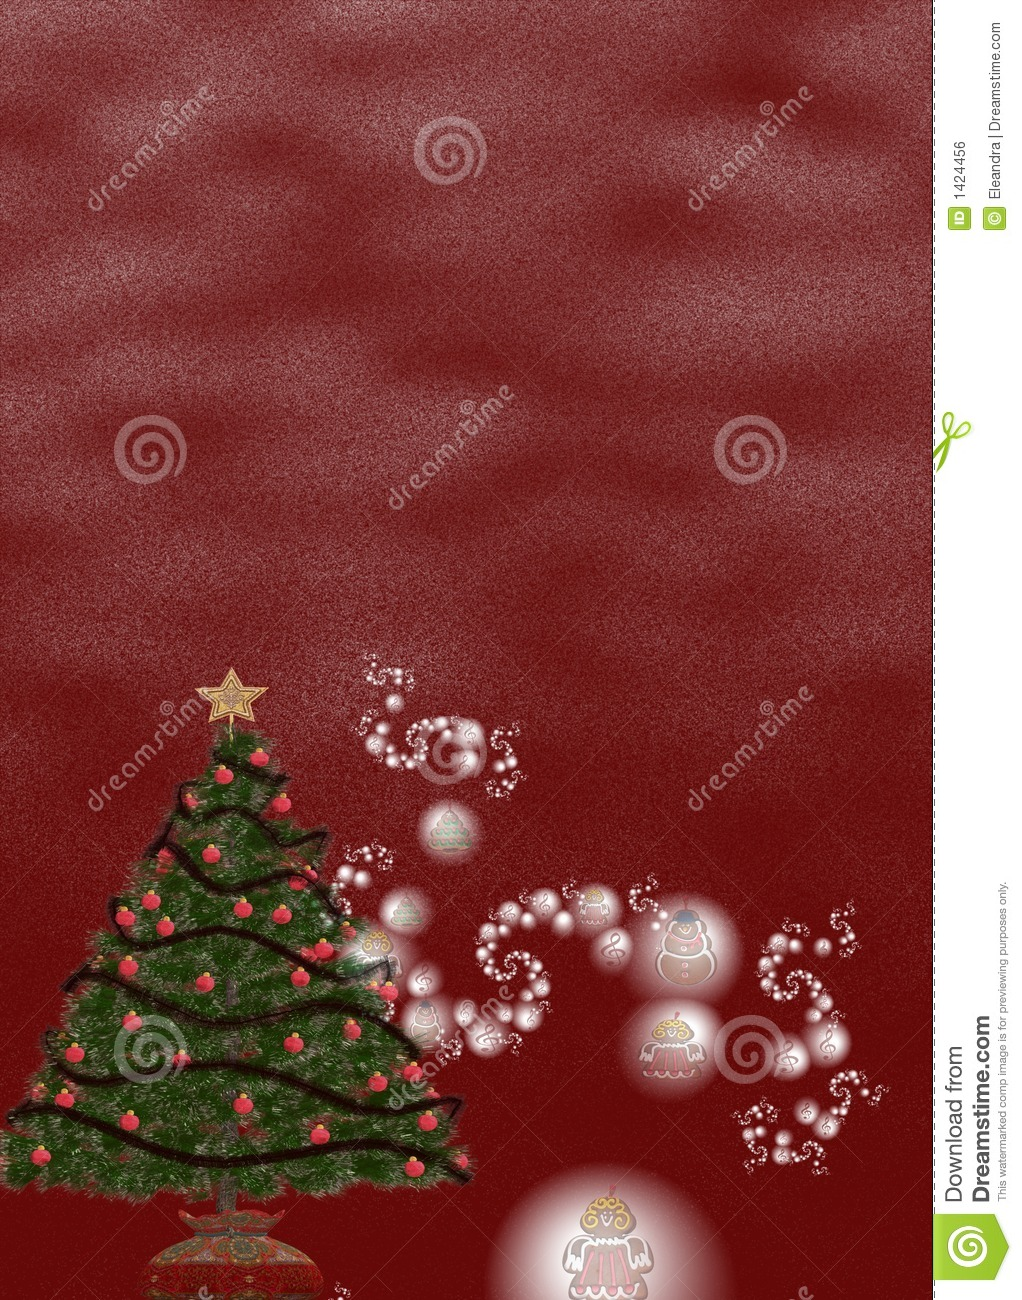 Fundo II do Natal